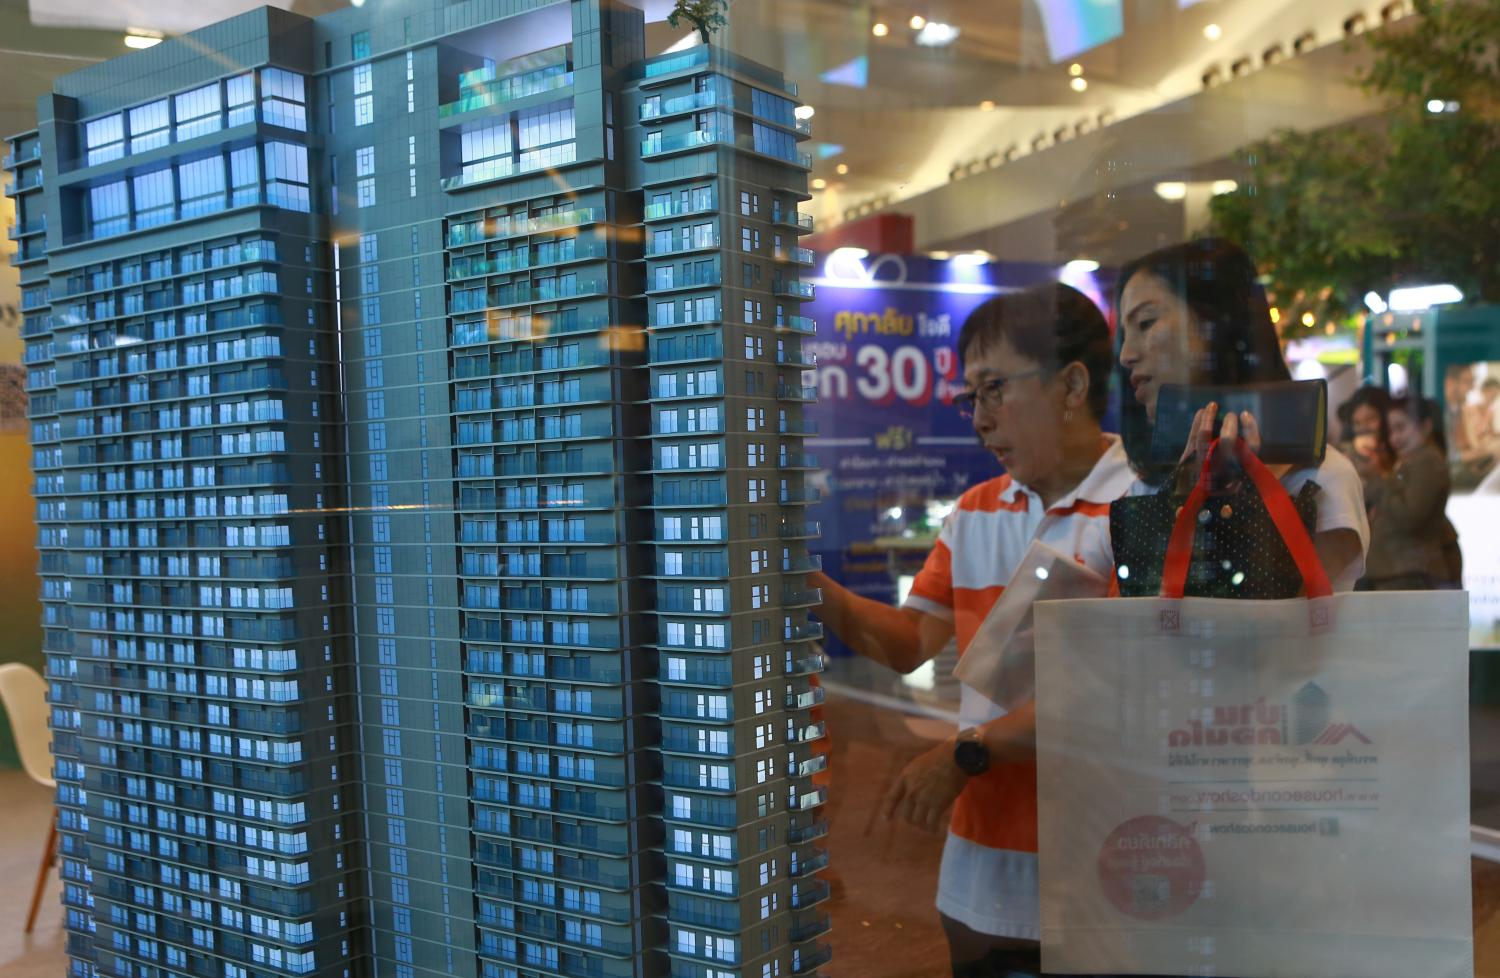 Perusing displays during the House & Condo Show in 2019.(Photo by Somchai Poomlard)